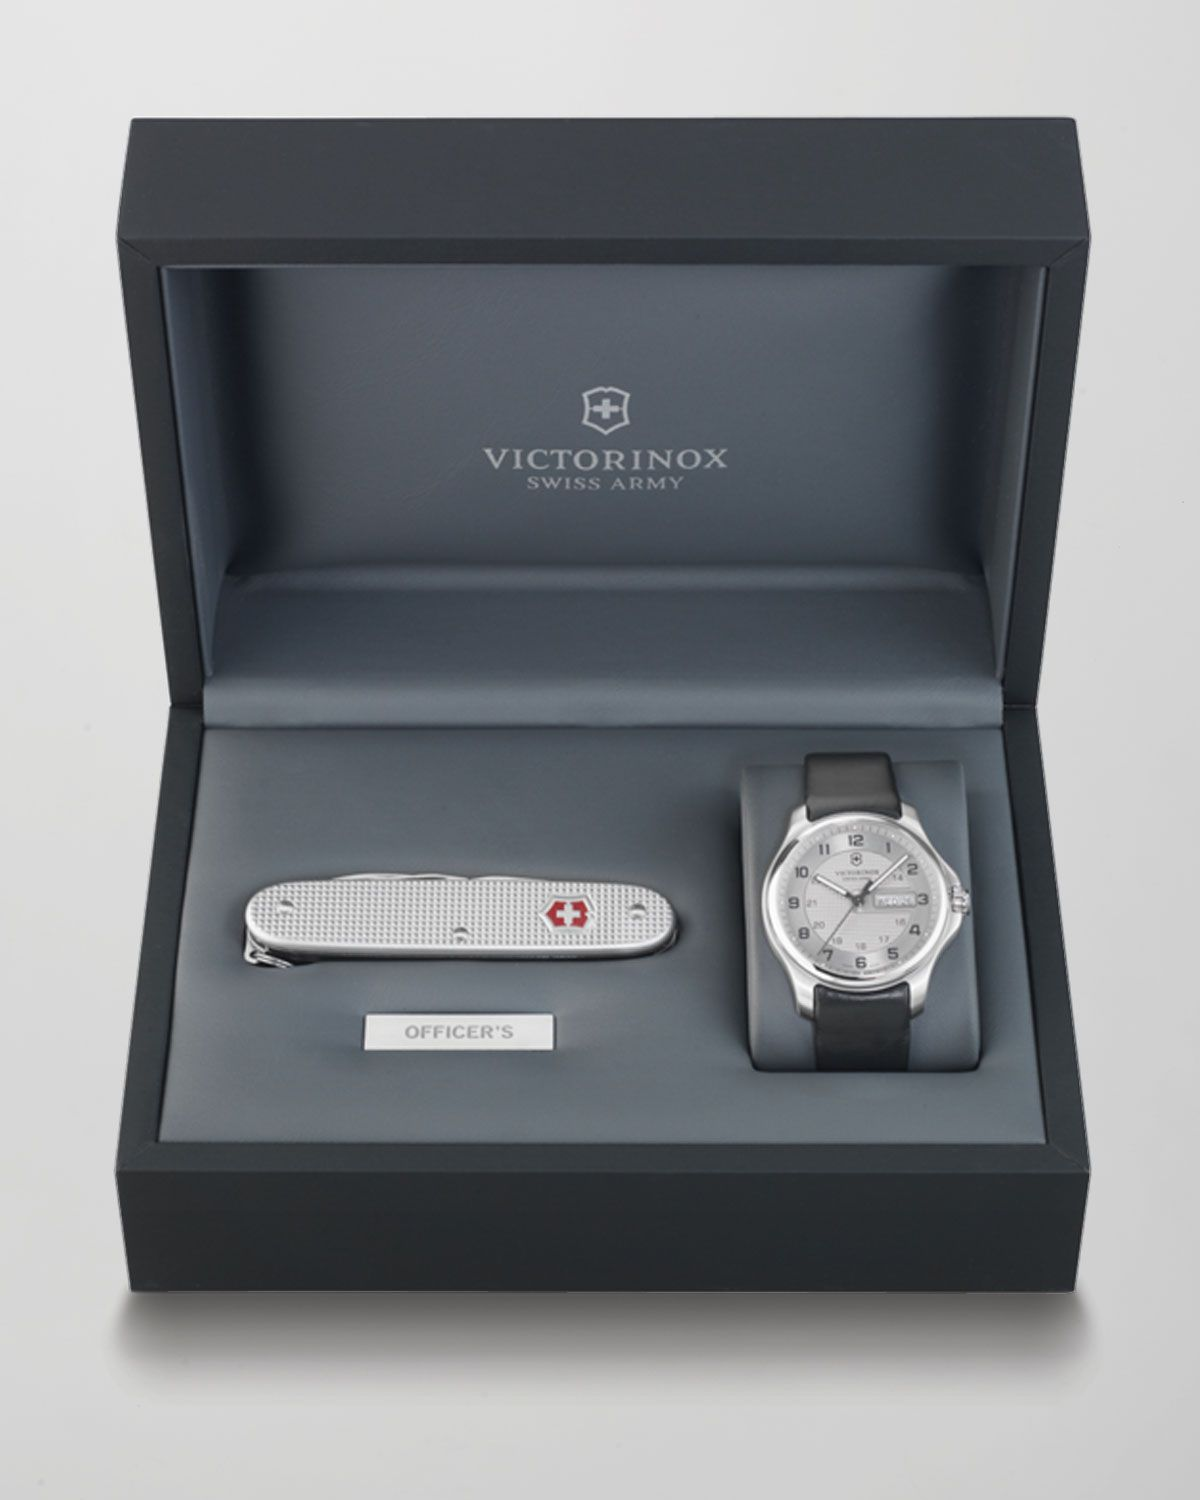 http://harrislove.com/victorinox-swiss-army-officer-s-watch-knife ...